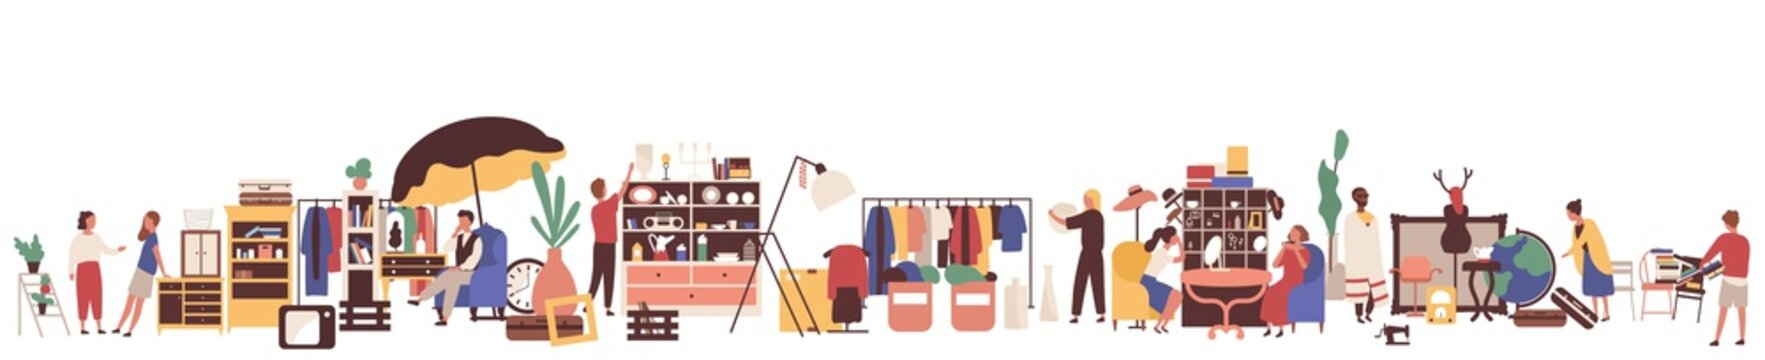 Flea market flat vector illustration. Customers and sellers cartoon characters. Clothing and vintage goods retail business. Garage sale, second hand shop. Merchandise and consumerism concept.